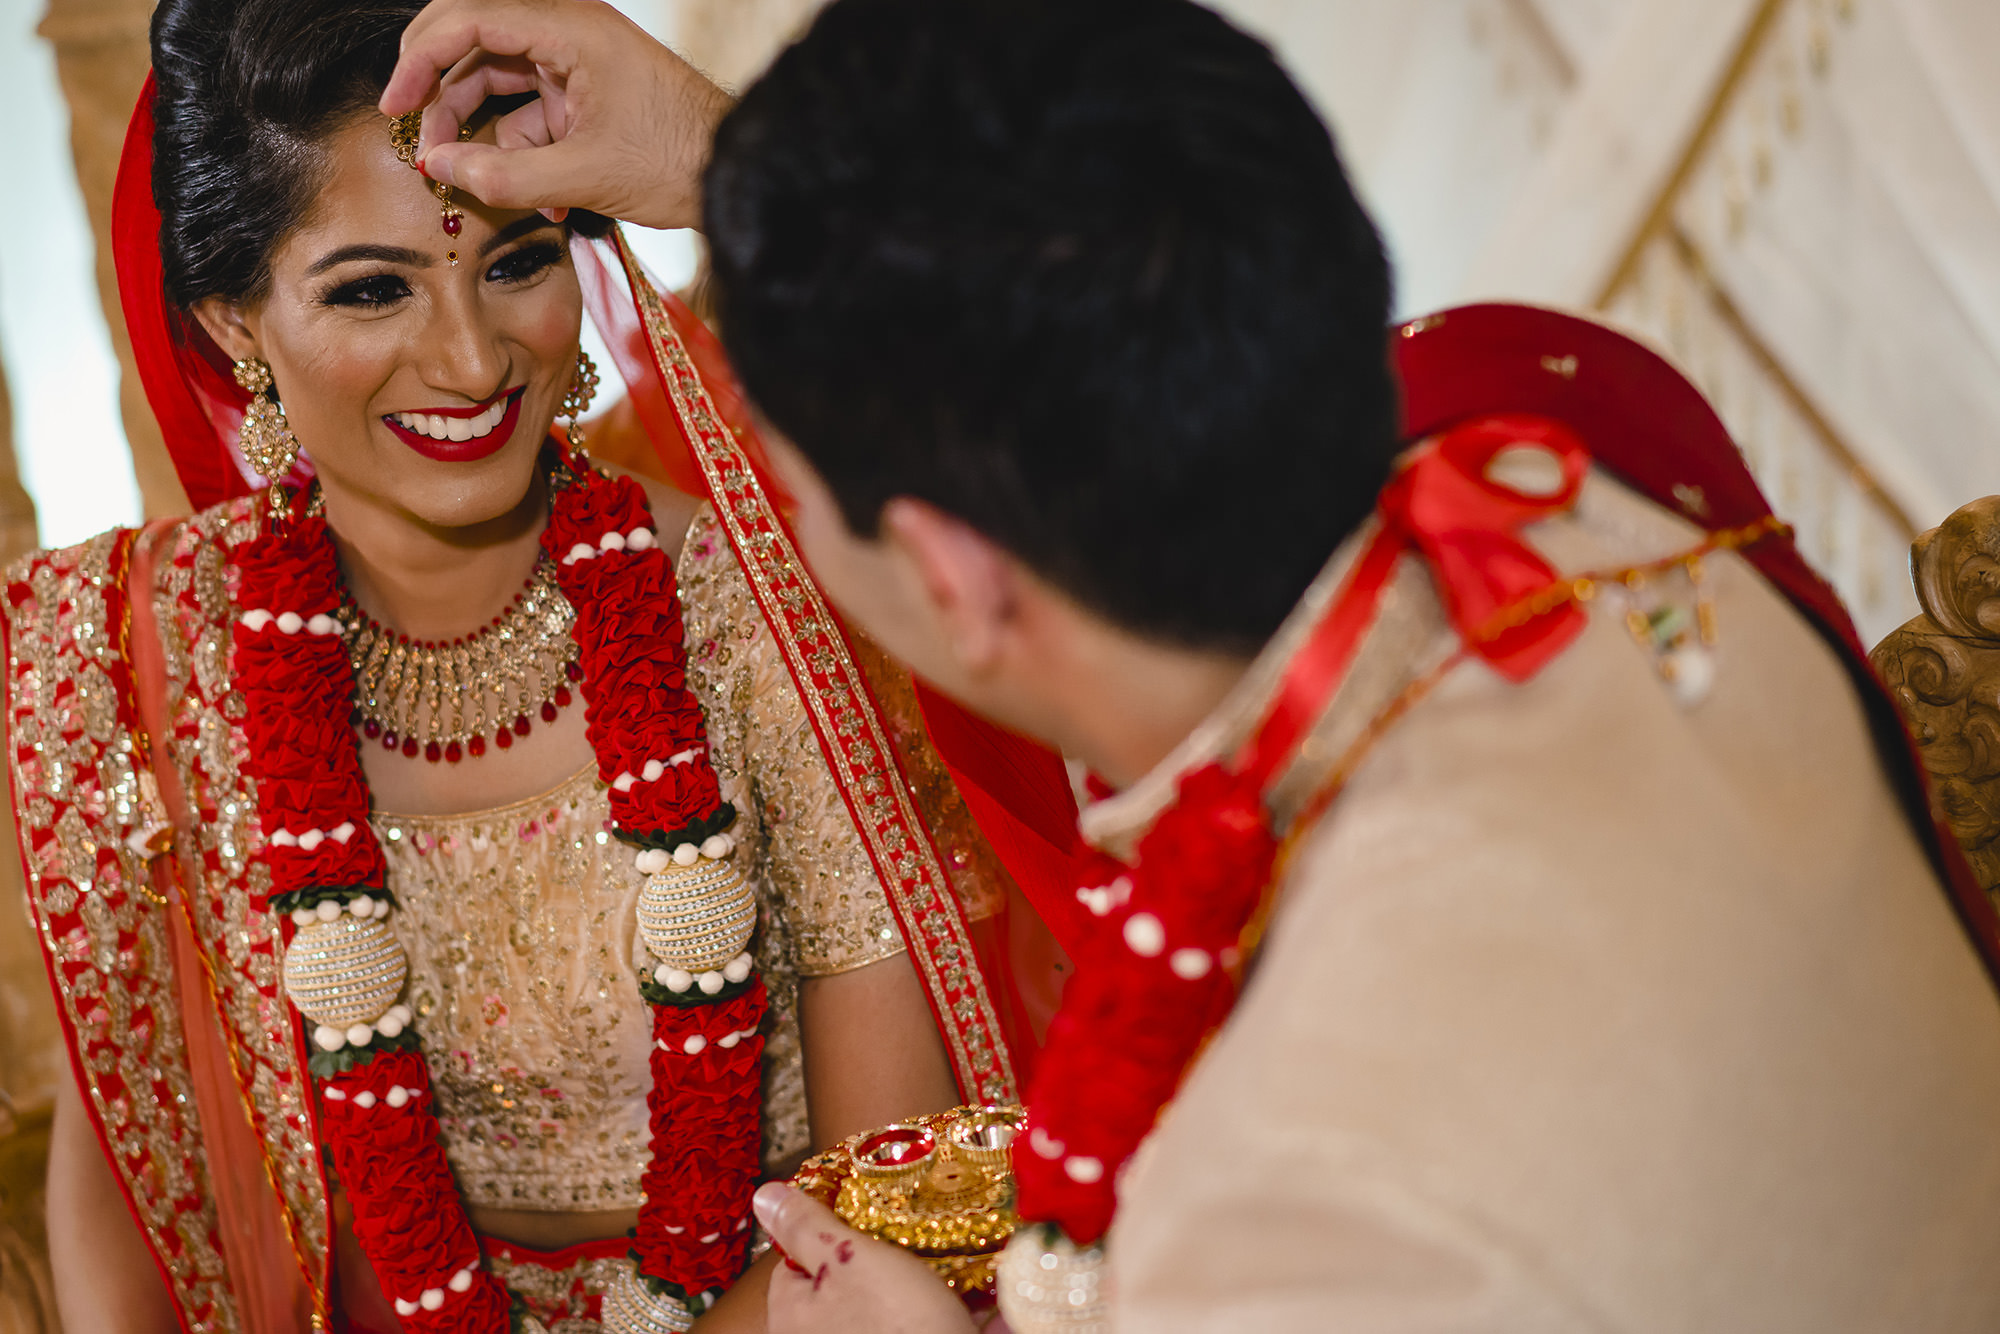 groom placing sindhoor on brides forehead to signify marriage